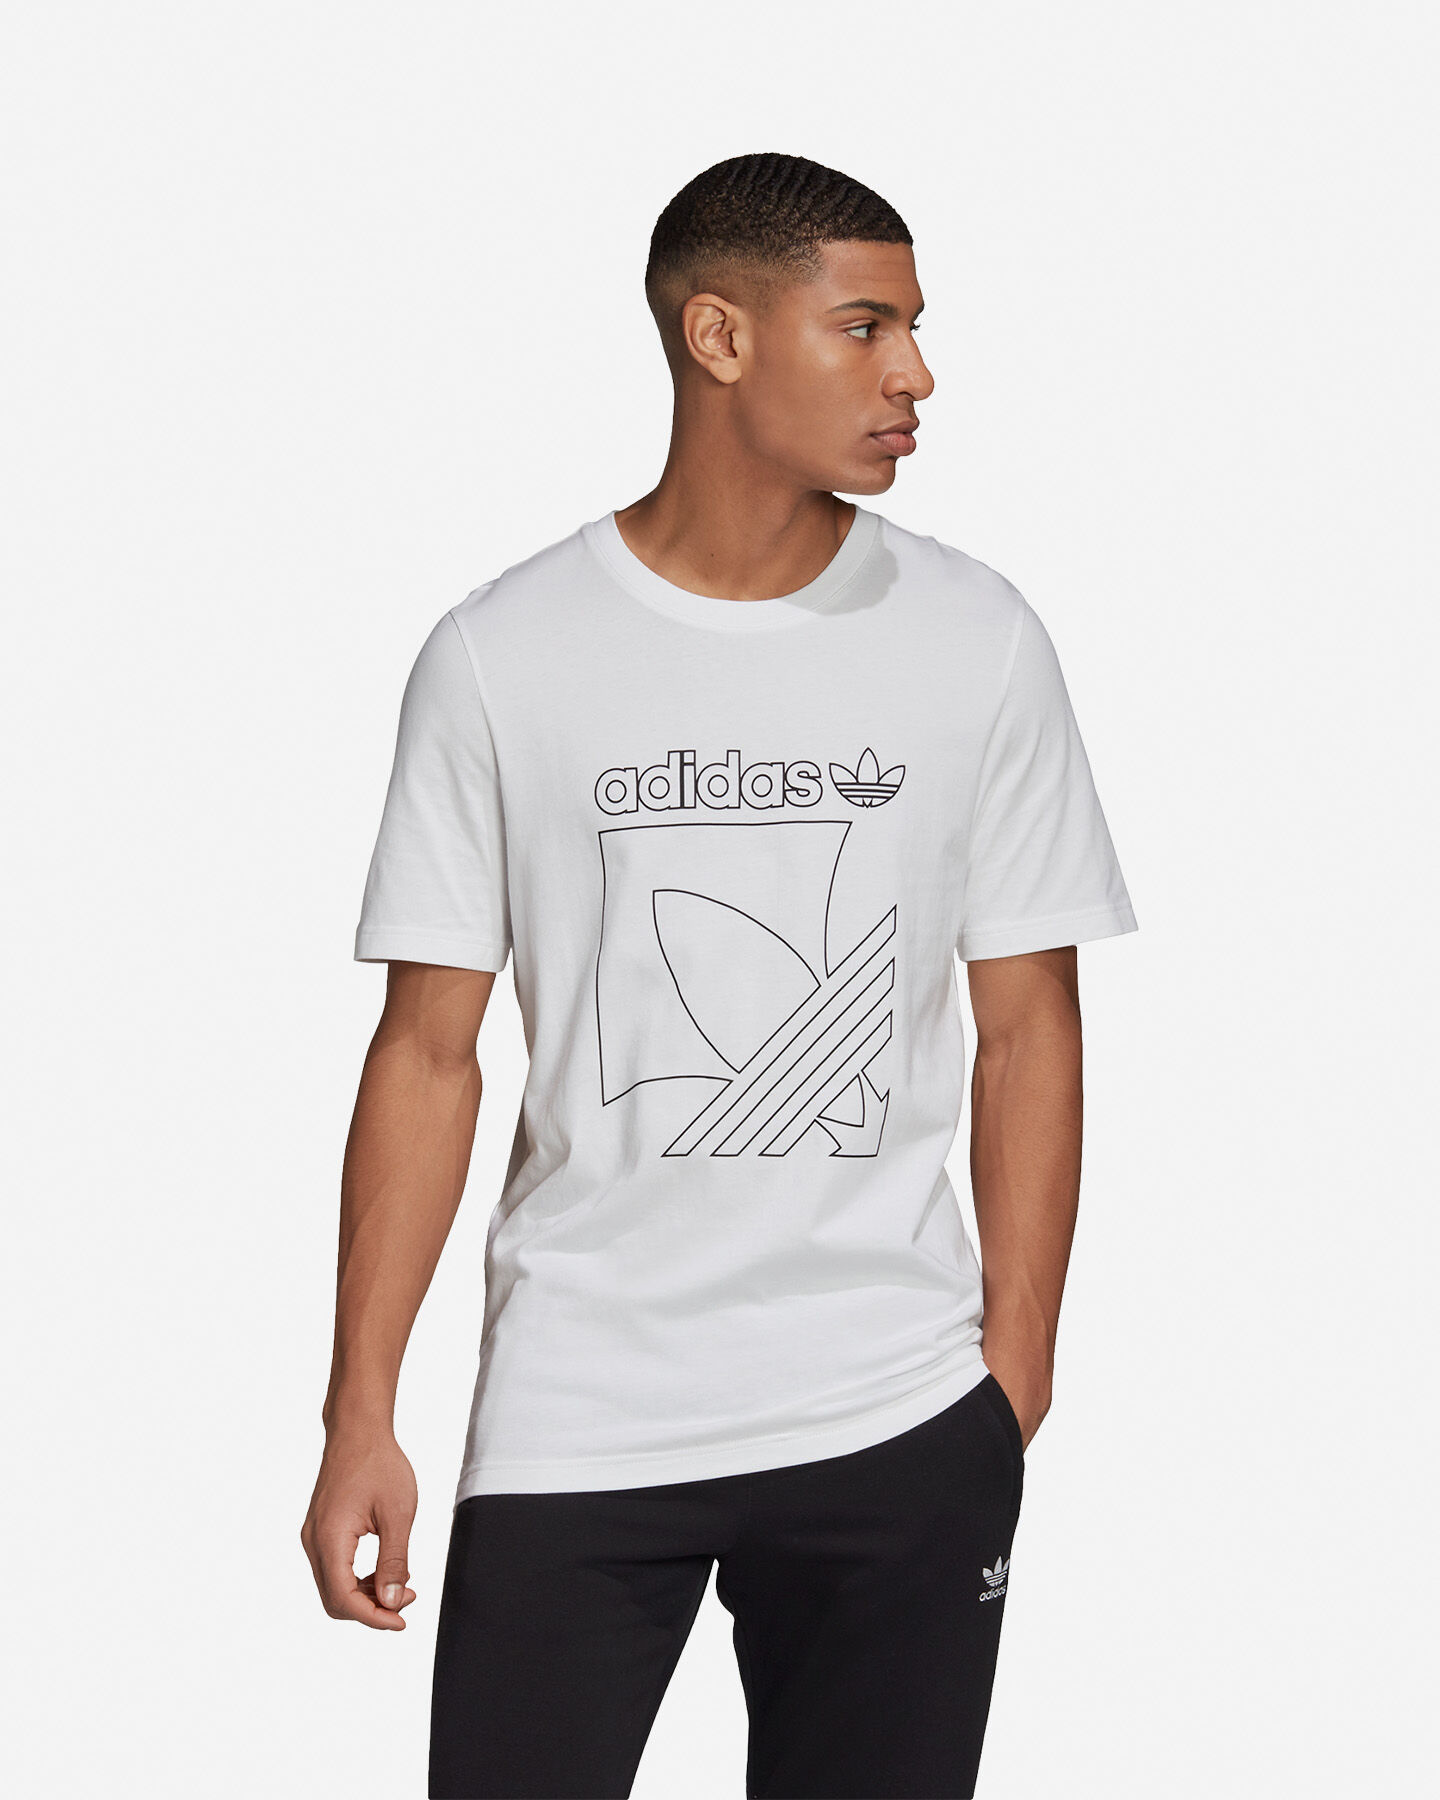 T-Shirt ADIDAS OUTLINE M S5210669 scatto 2